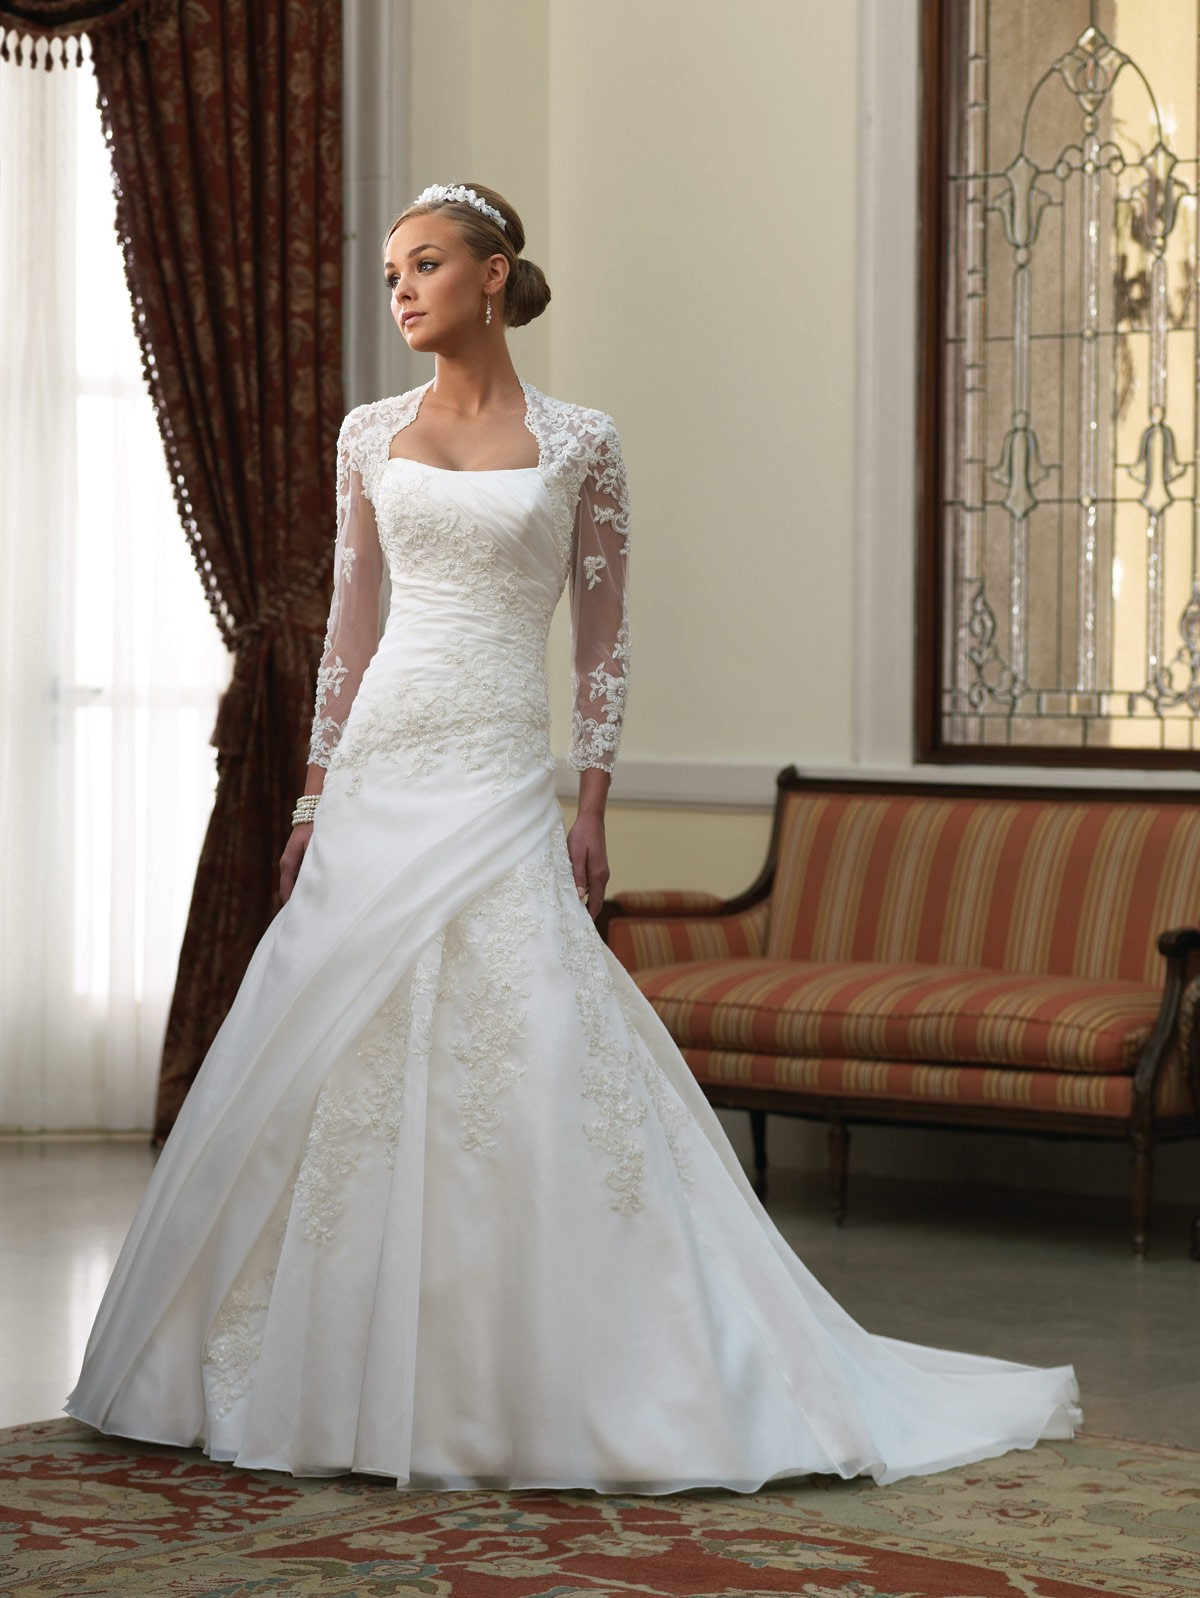 Pics s Wedding Dresses With Lace